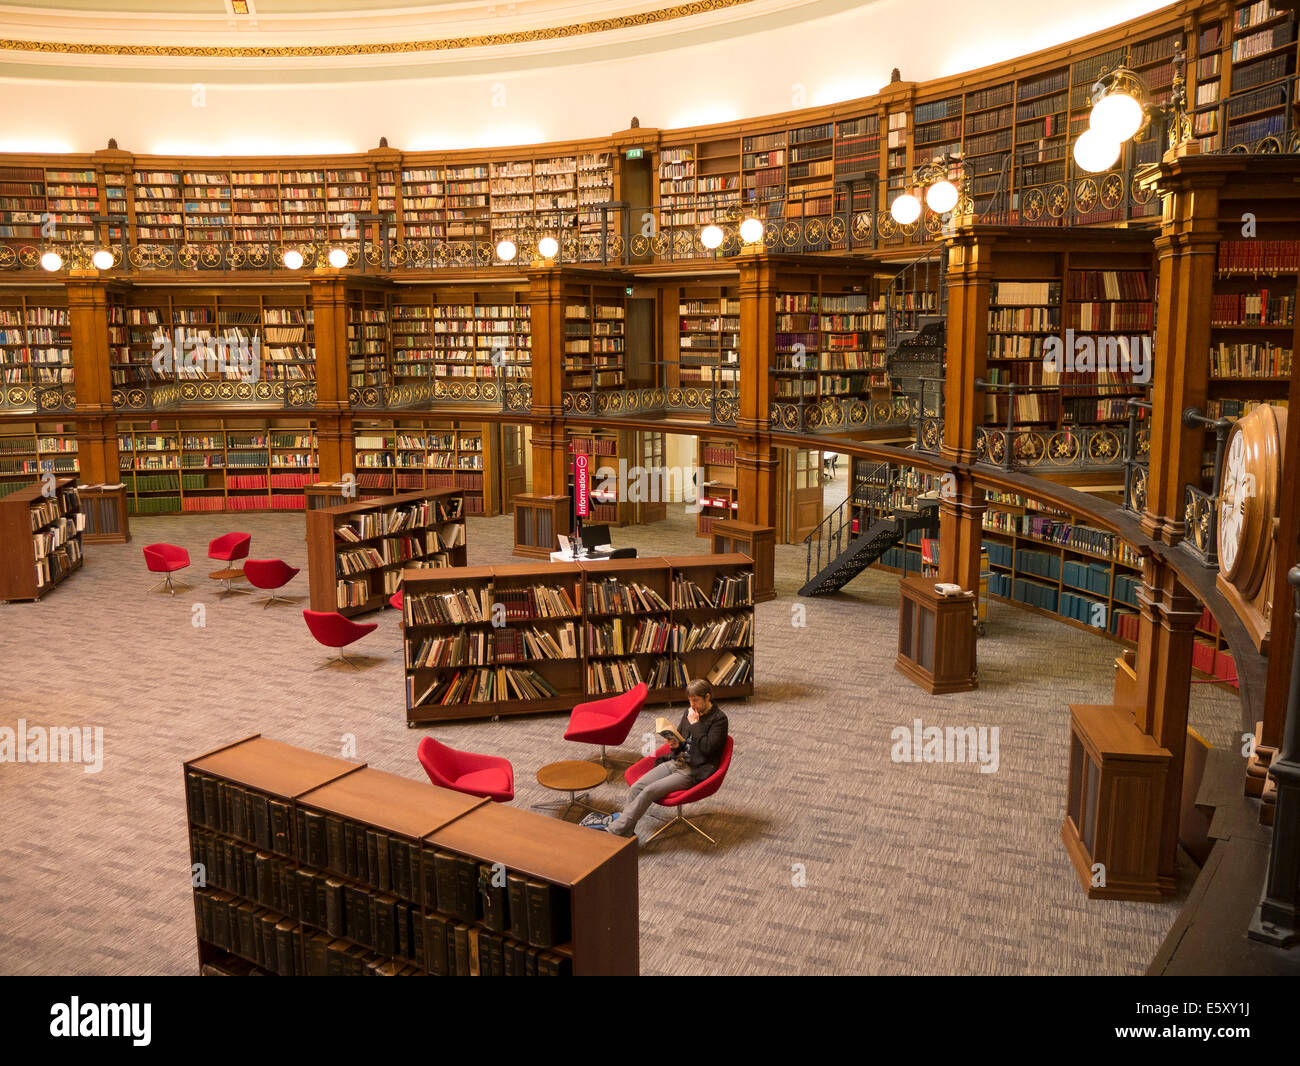 Liverpool Central Library. Picton Reading Room, Traditional interior of reference library Stock Photo